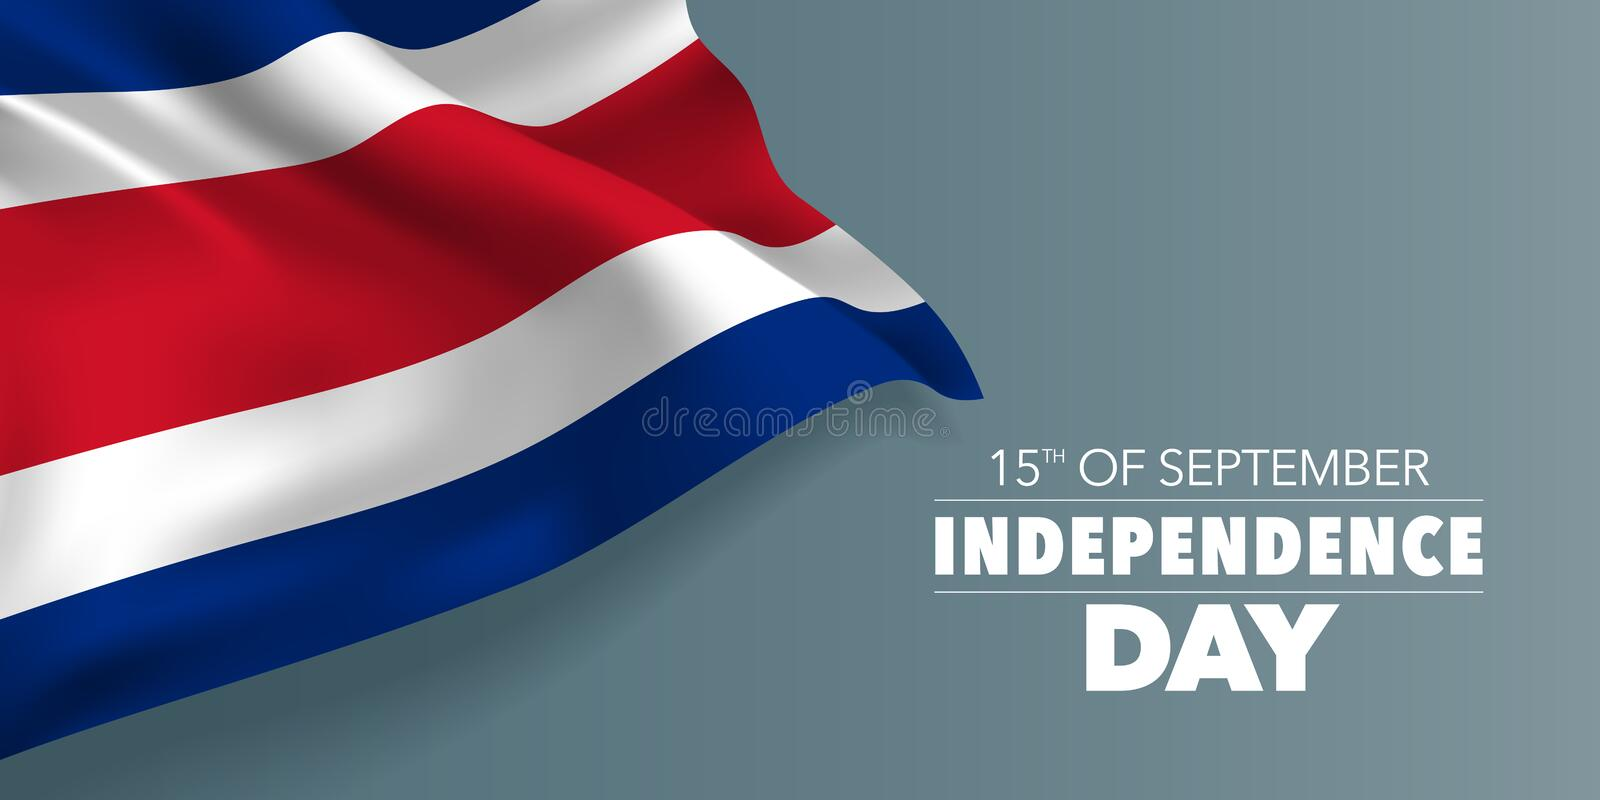 Costa Rica happy independence day greeting card, banner with template text vector illustration royalty free illustration